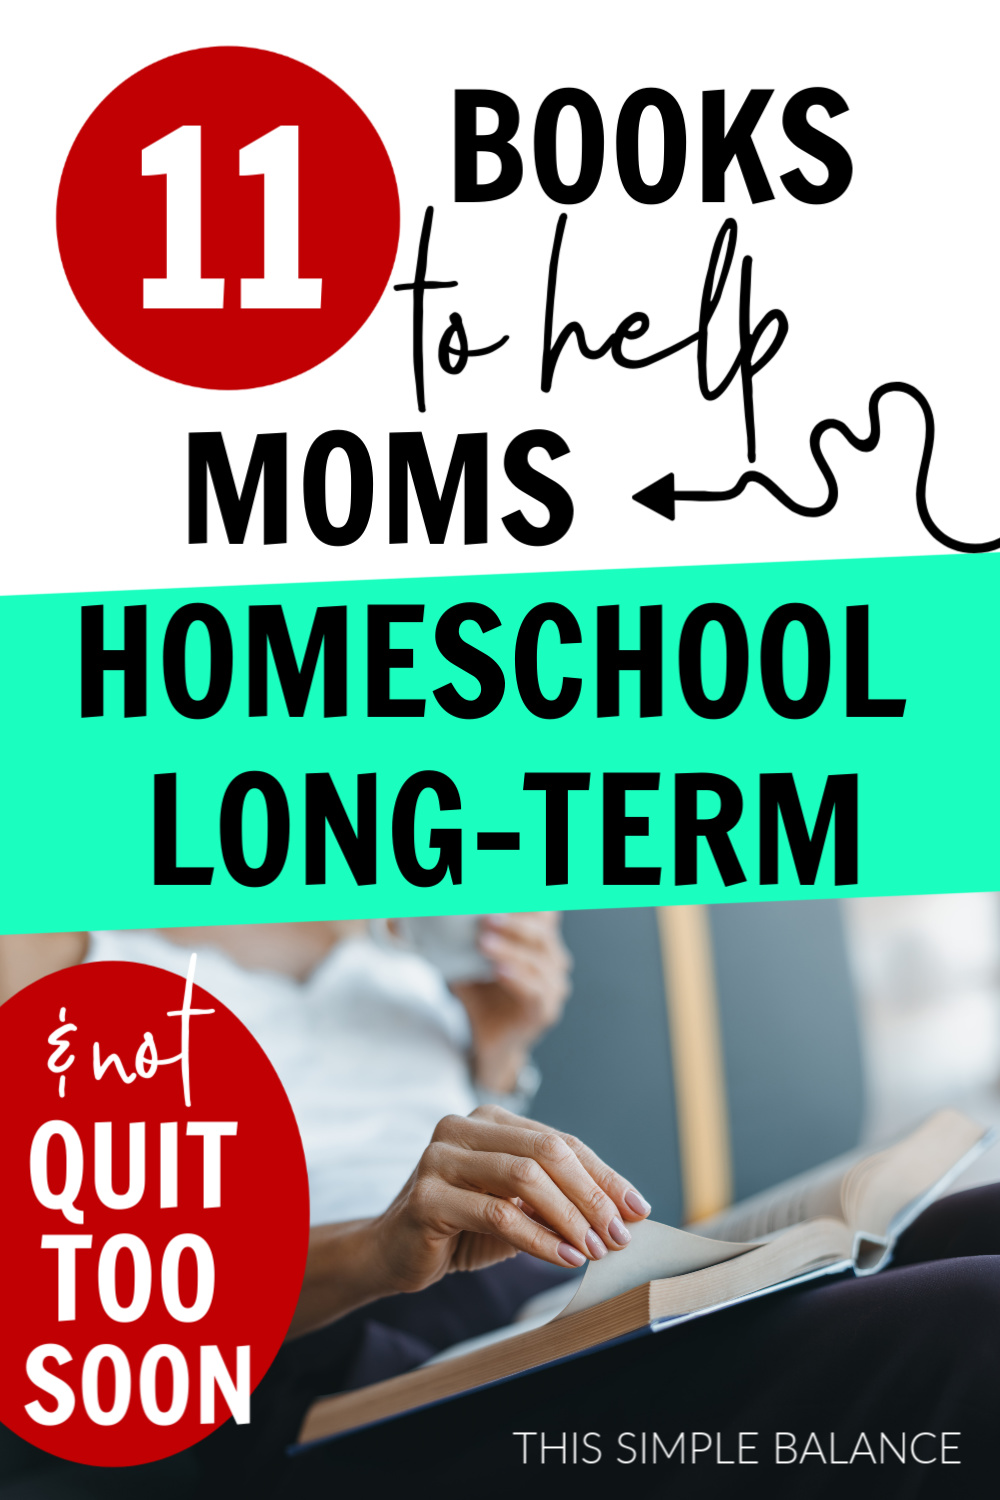 Homeschooling for the long haul isn't easy. It requires you knowing why you chose to homeschool in the first place and being confident in your reasons. These books can help solidify your why, giving you the foundation you need to homeschool long-term.